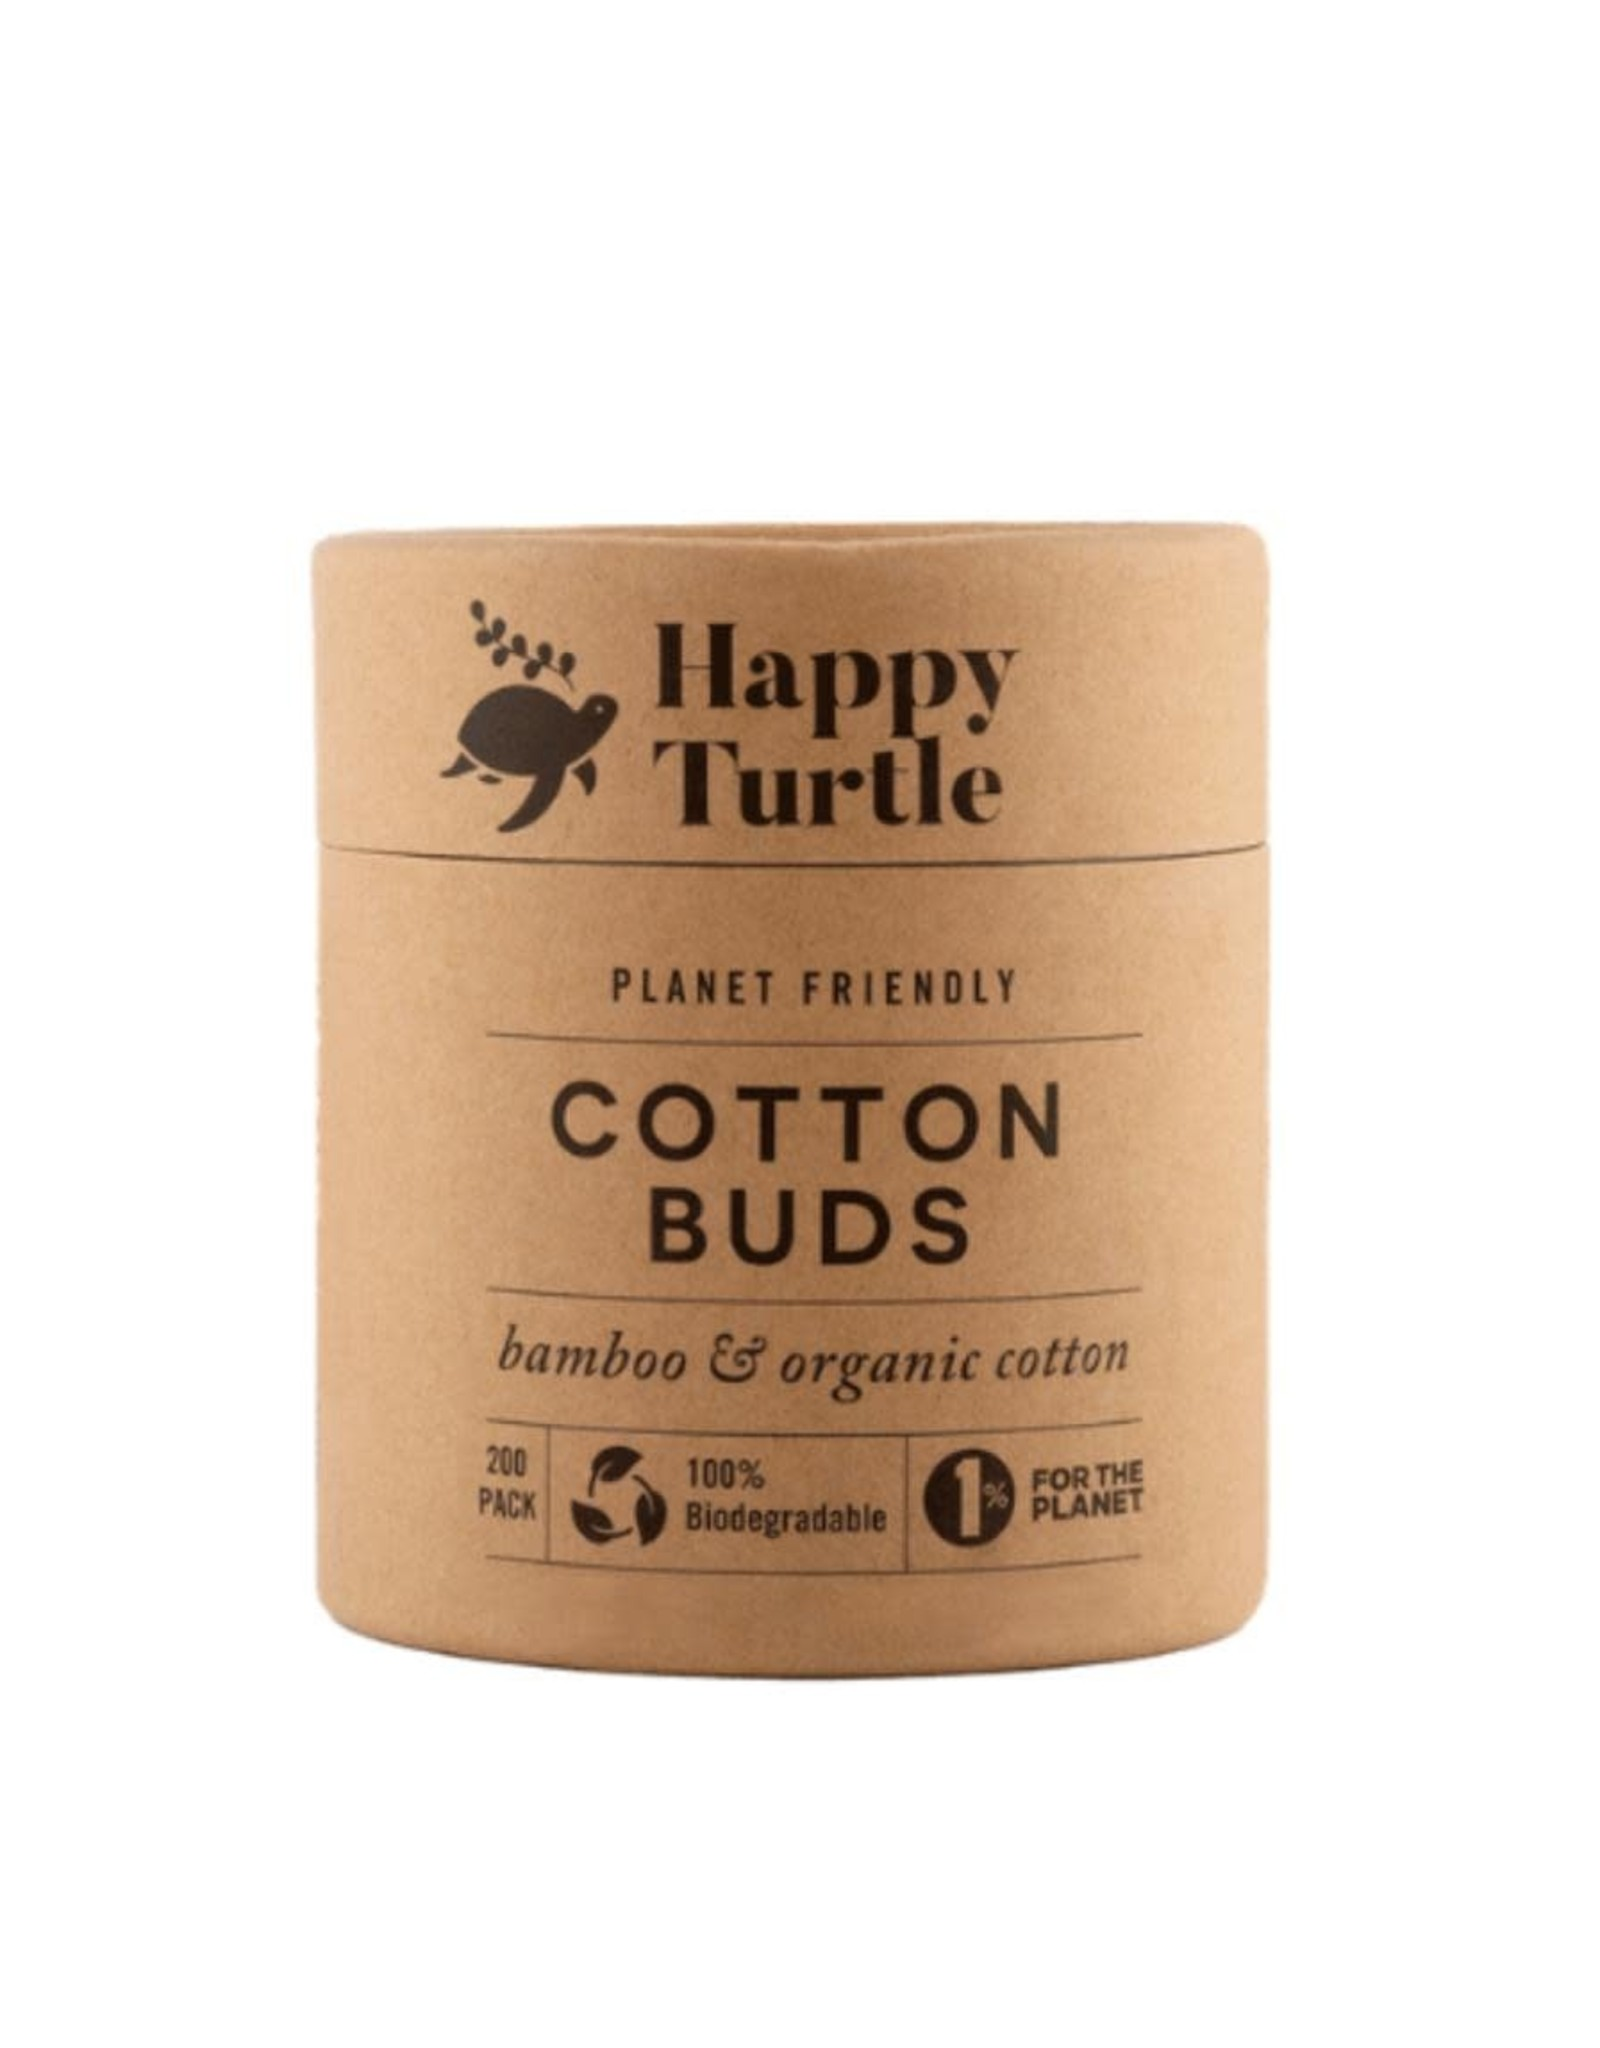 Happy Turtle Organic Cotton & Bamboo Cotton Buds - Round Tub - 200 pack